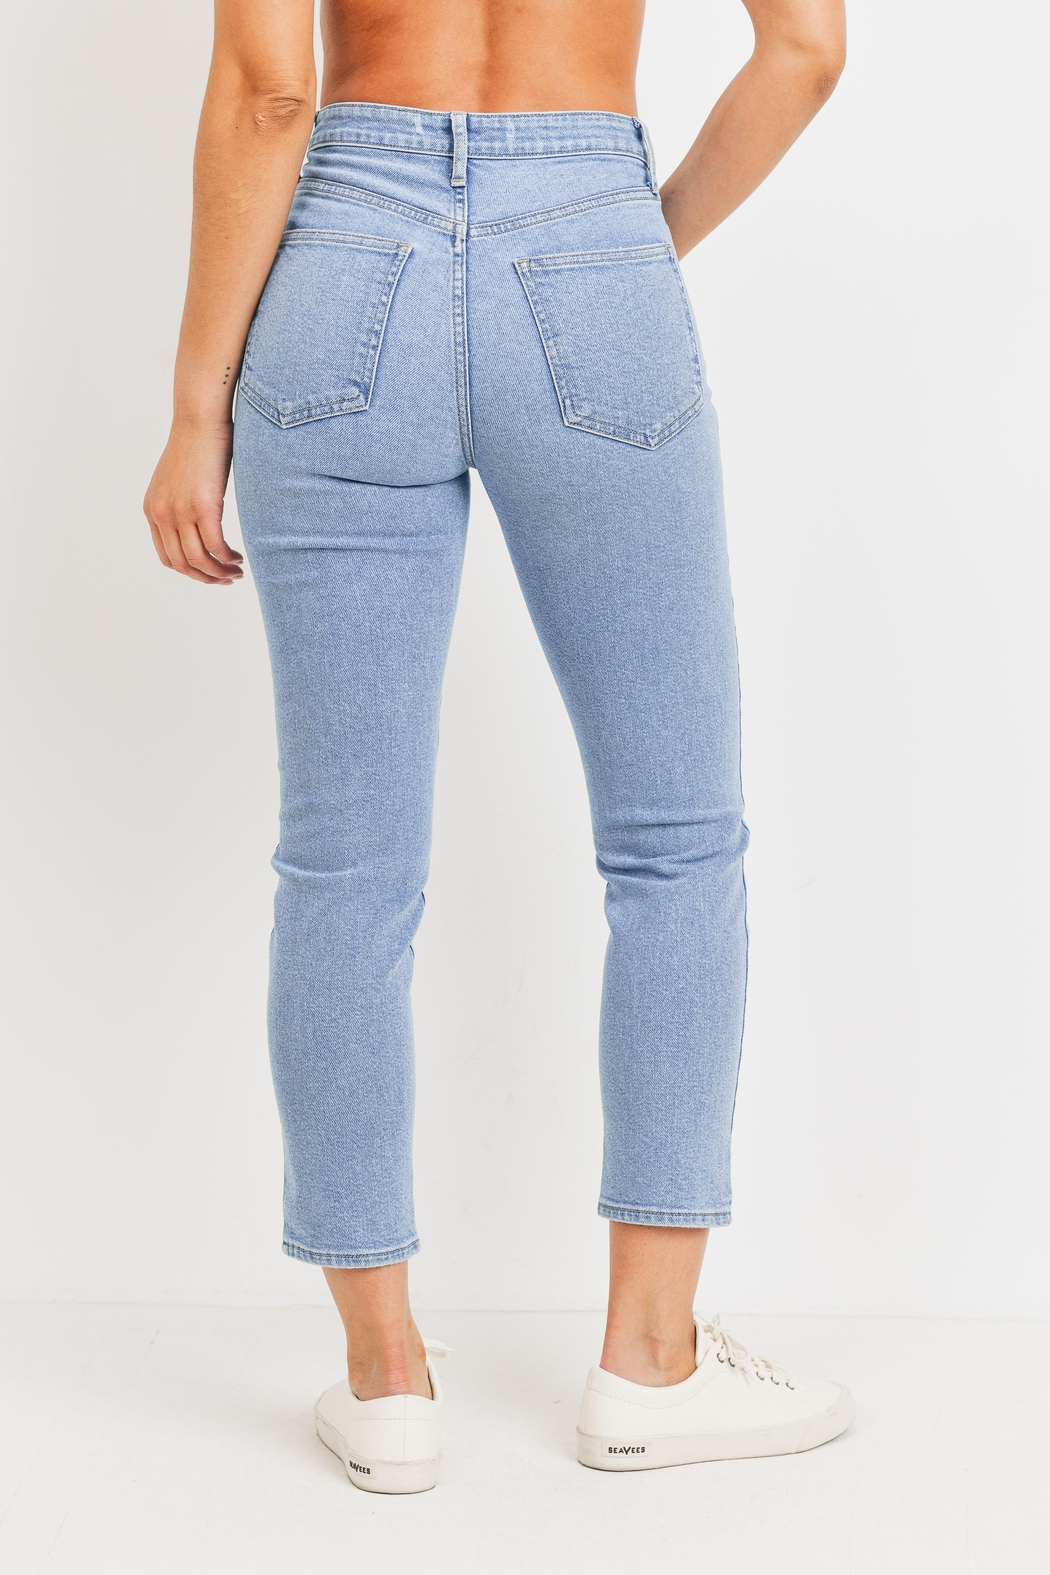 Just Panmaco Inc. High Rise Mom Denim Jeans - Side Cropped Image